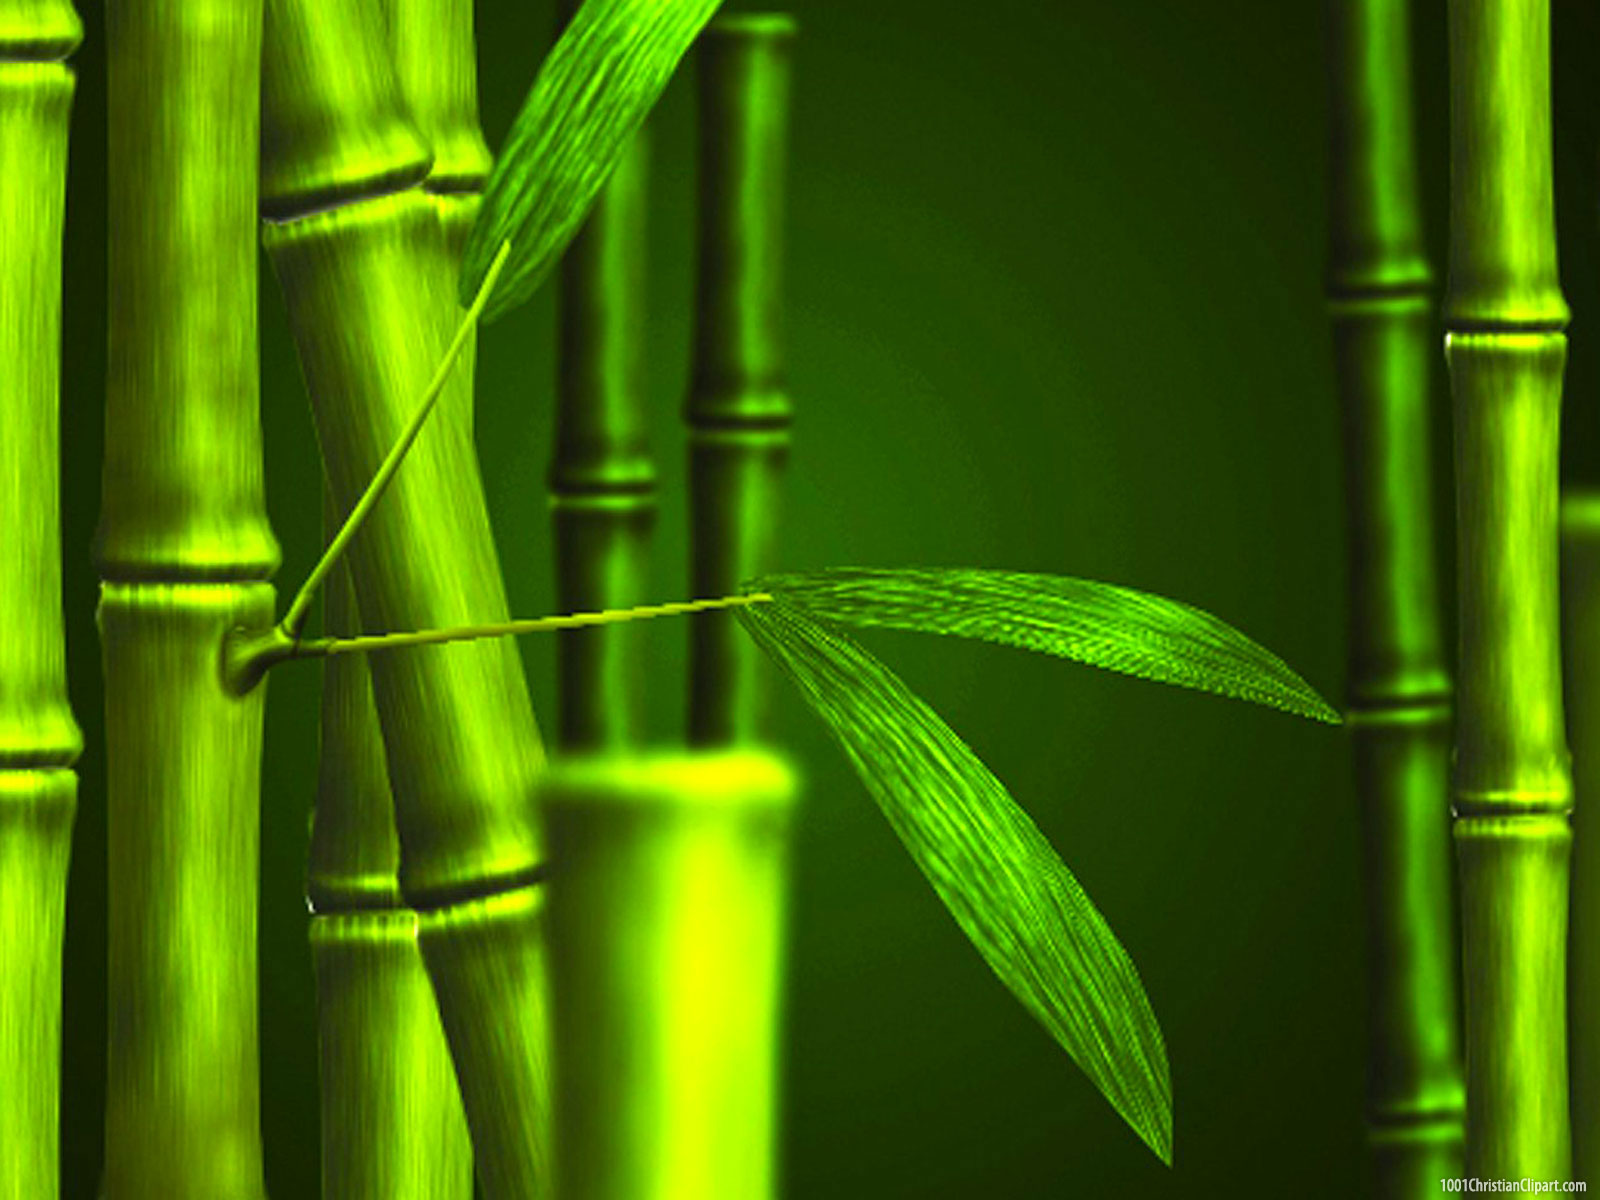 bamboo green nature background � 1001 christian clipart